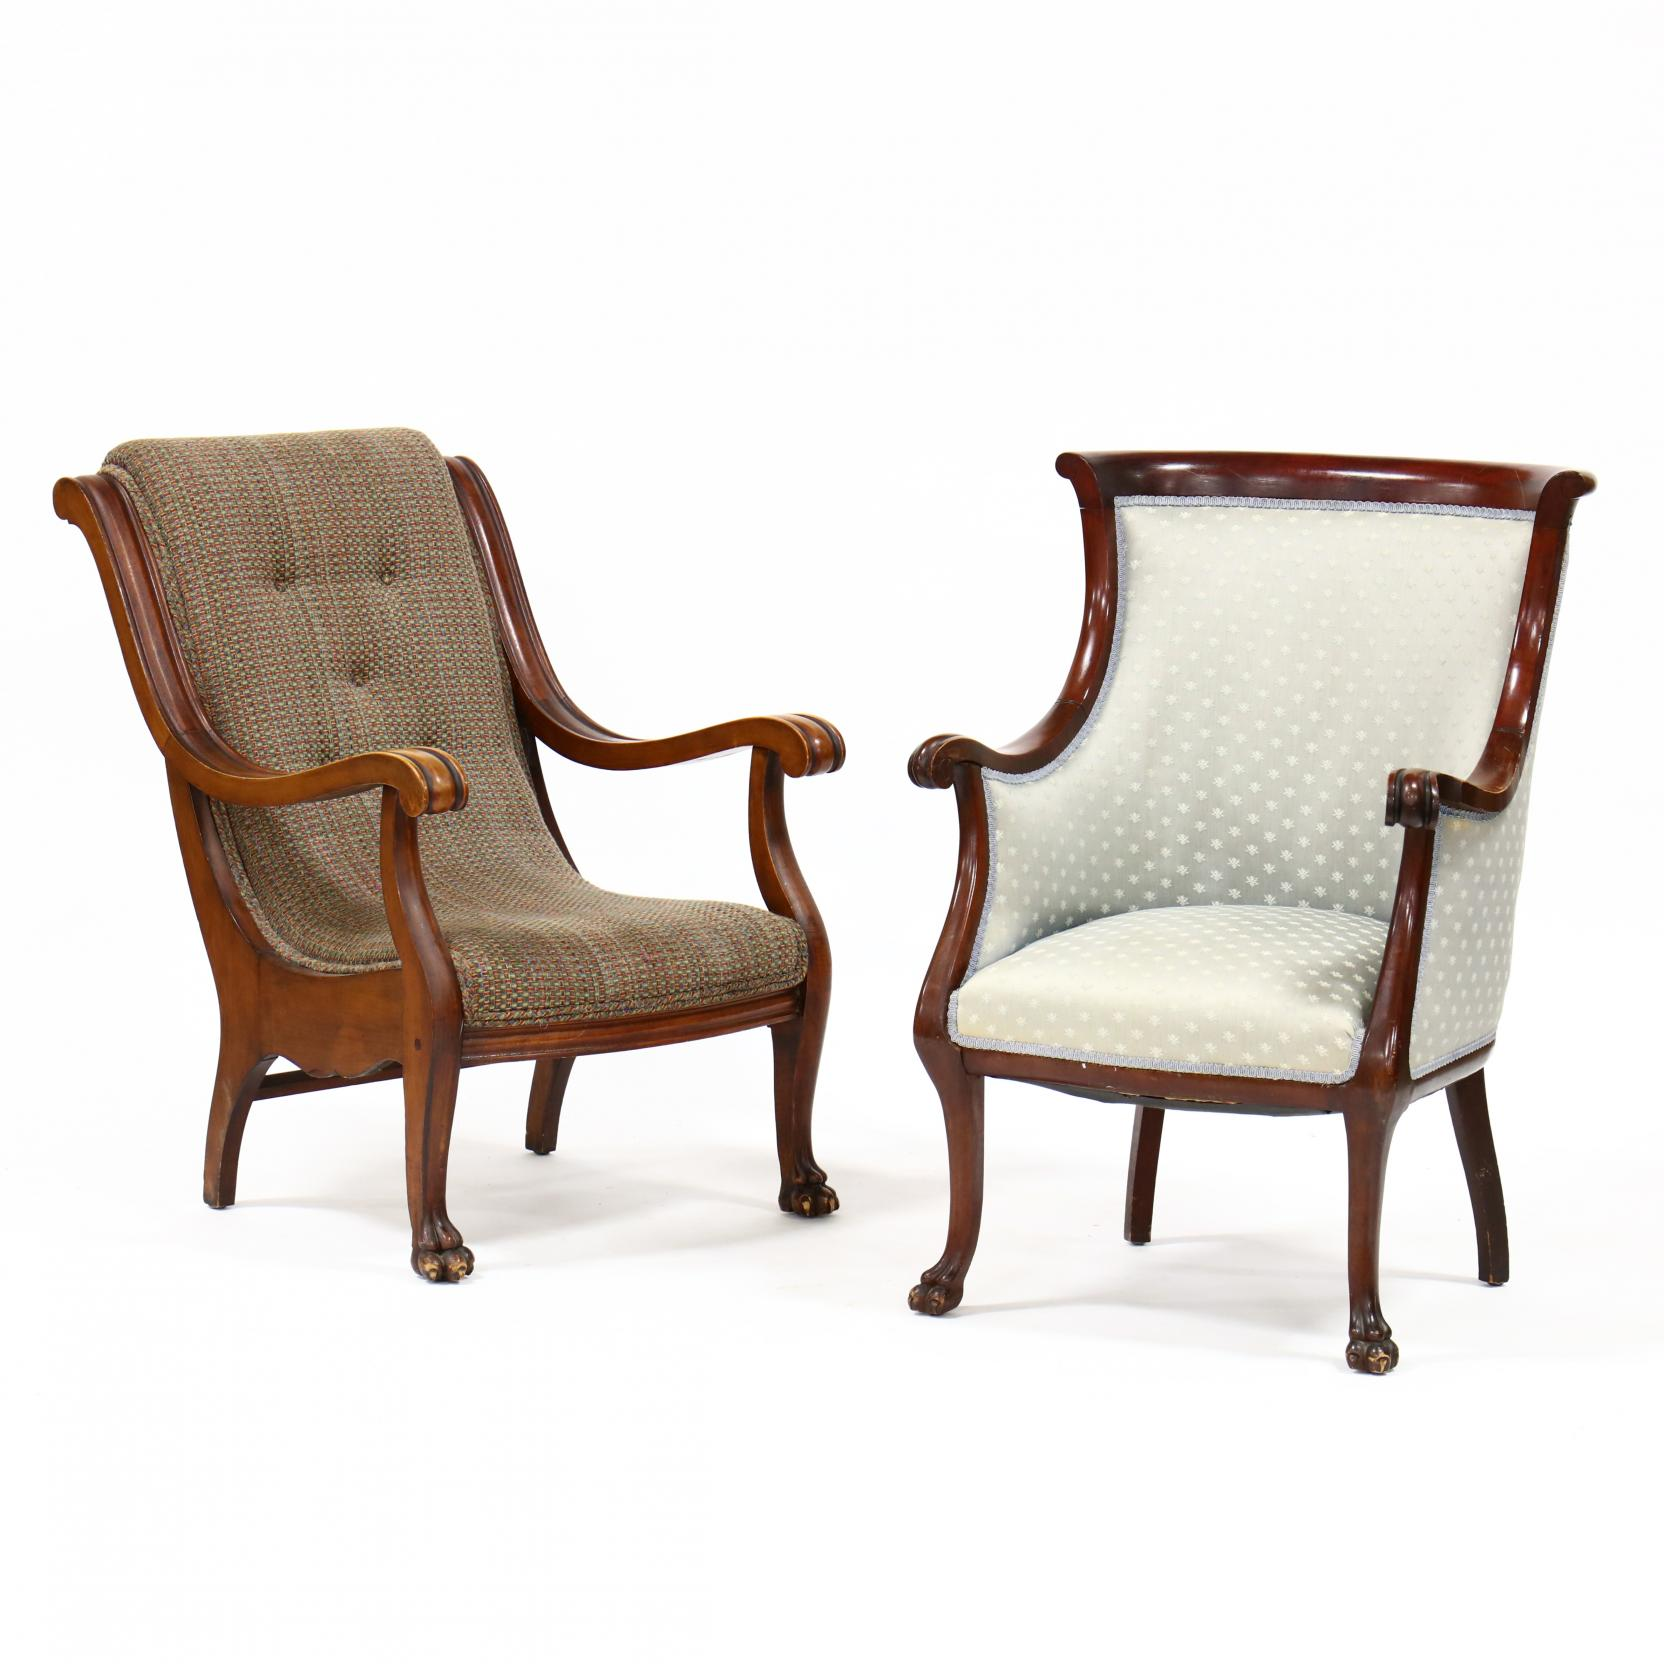 two-edwardian-parlour-chairs